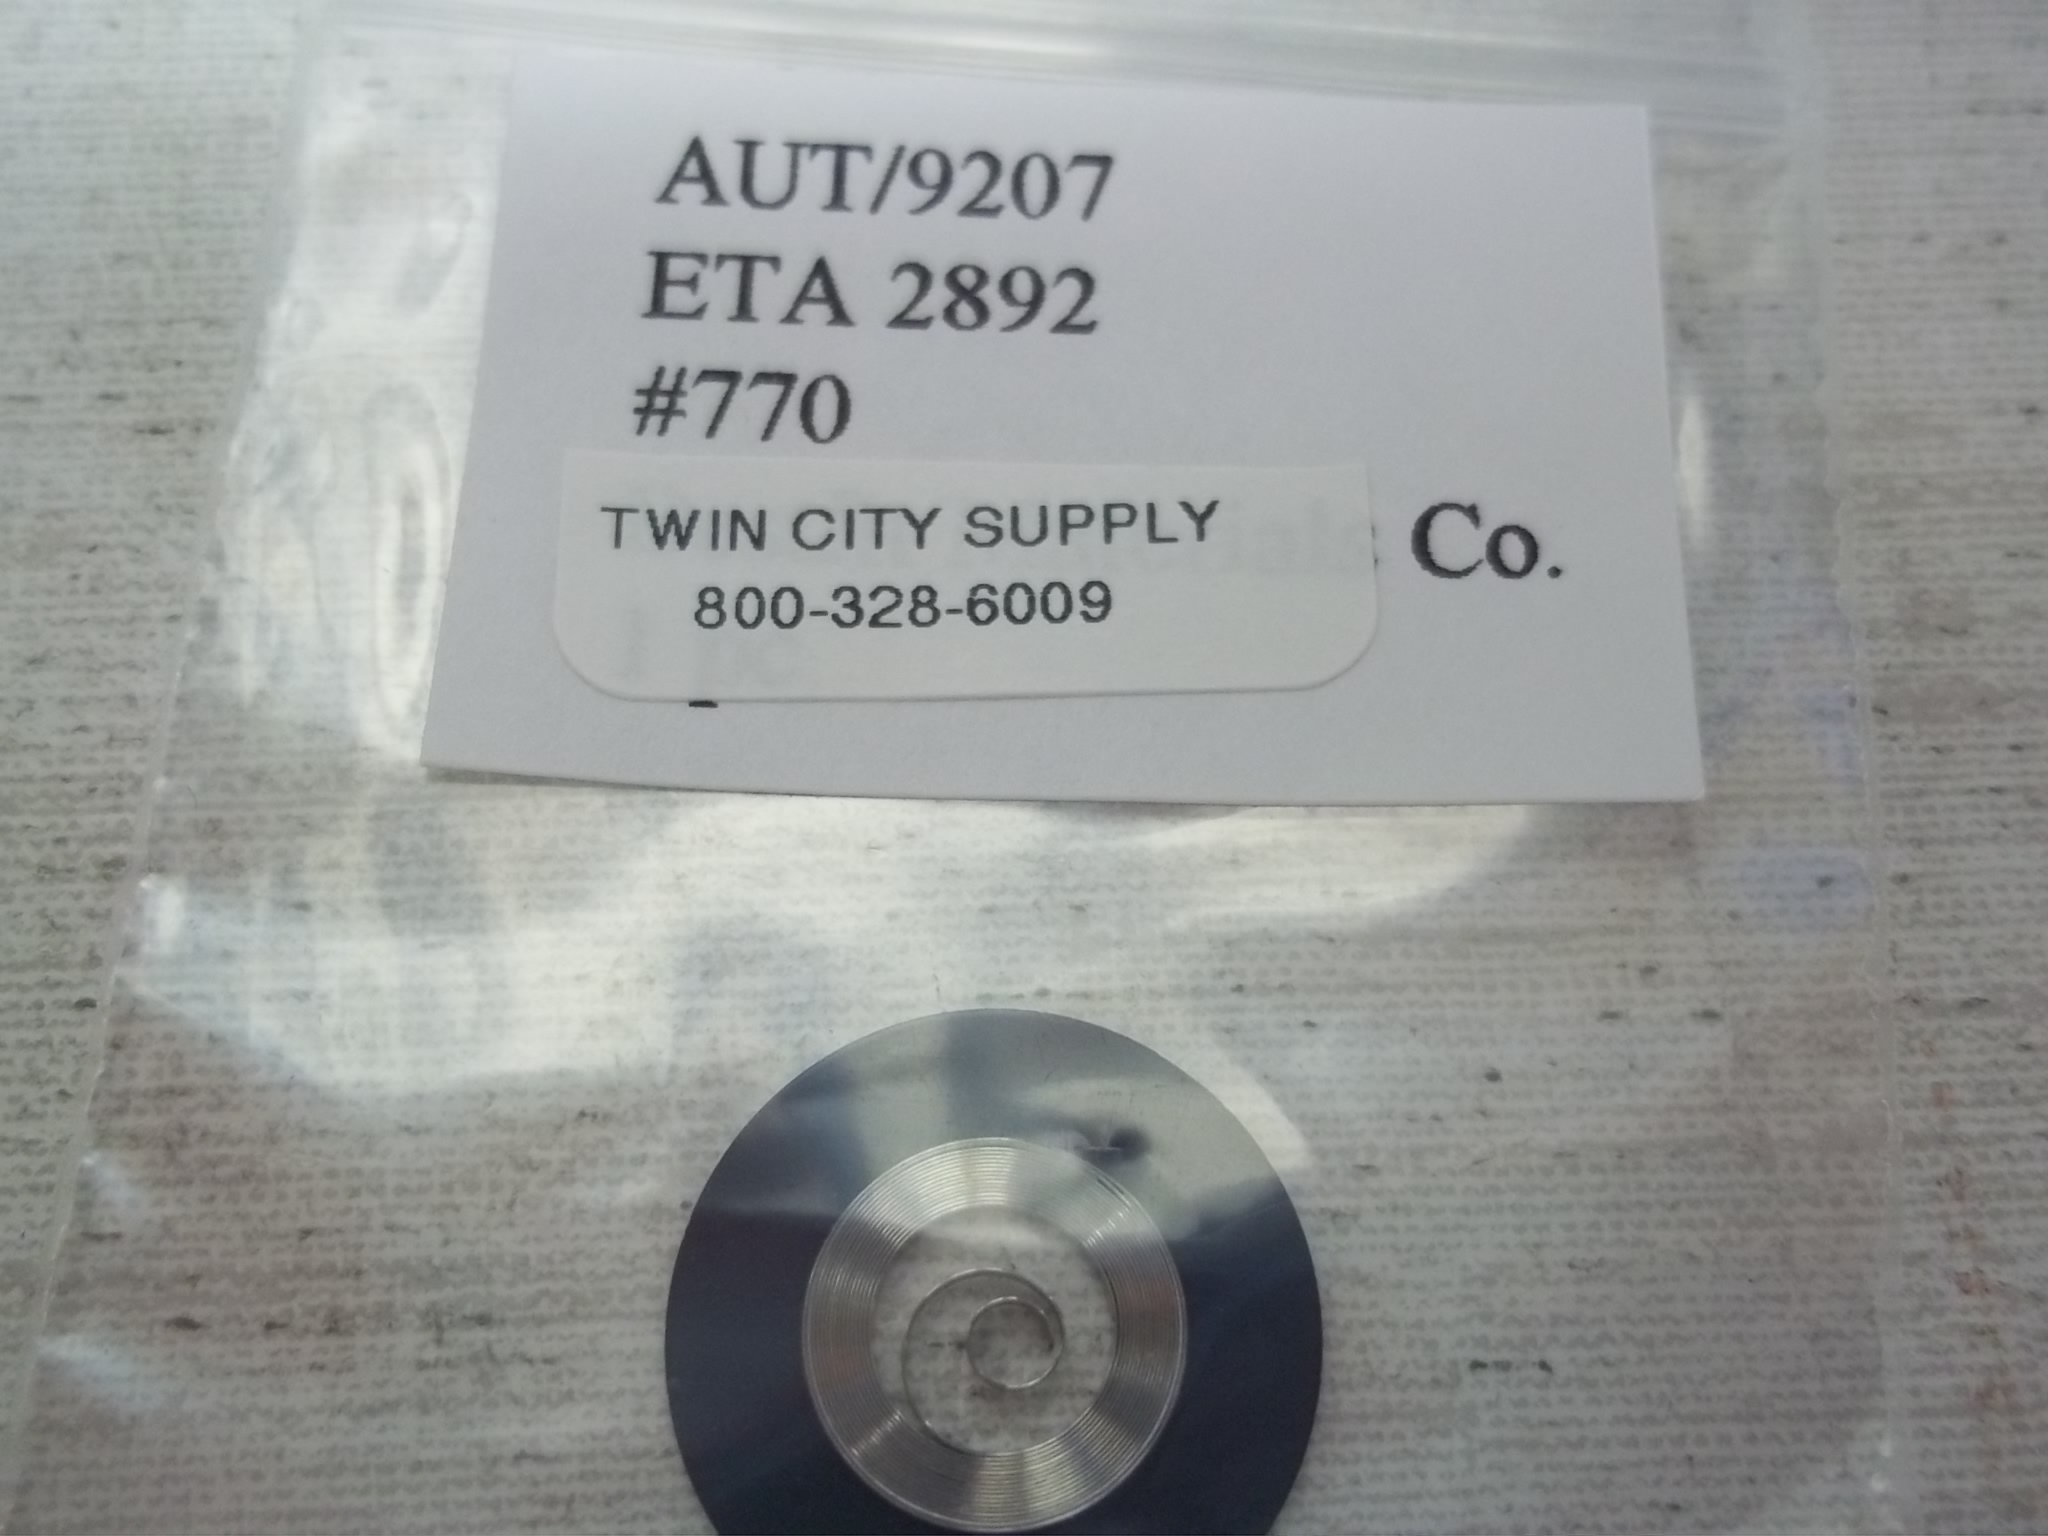 A9207 Replacement Swiss Mainspring for ETA 2892-2